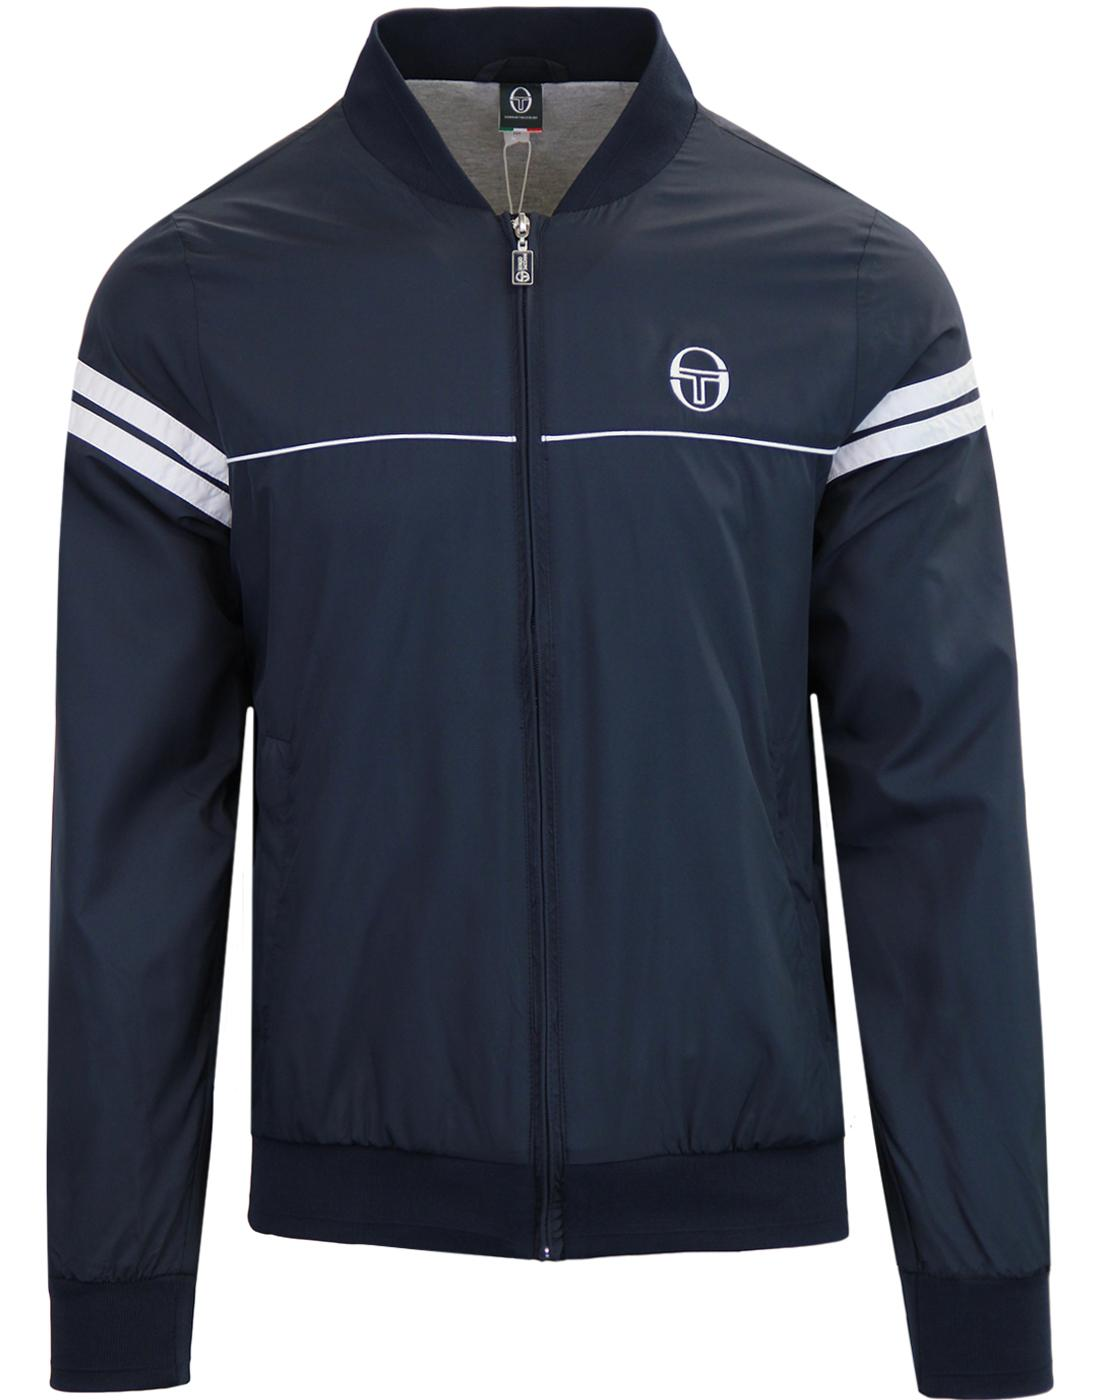 Orion SERGIO TACCHINI Retro Archive Jacket NAVY